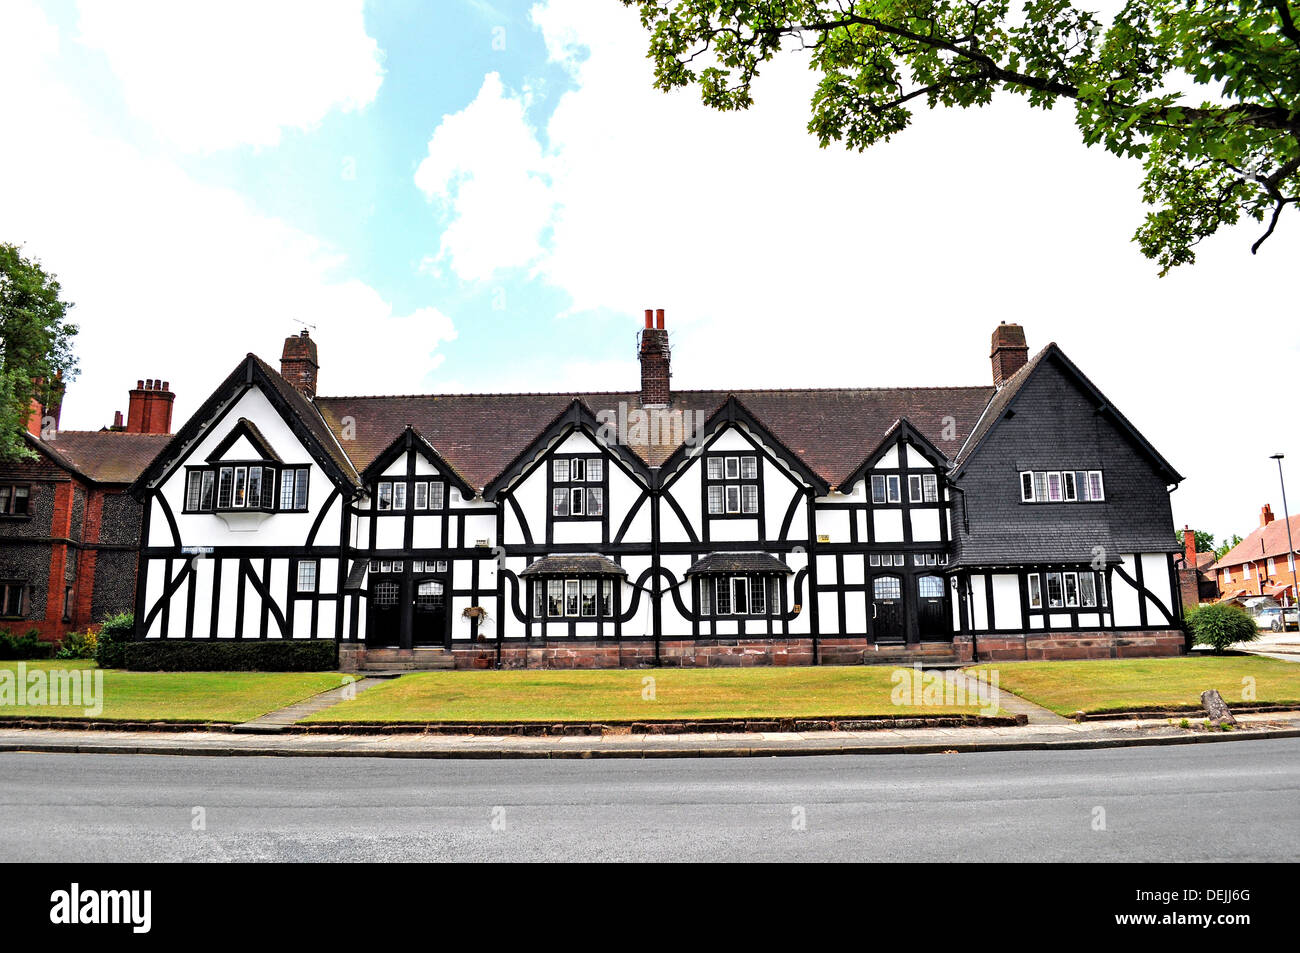 The village of Port Sunlight in Mersyside, UK - Stock Image